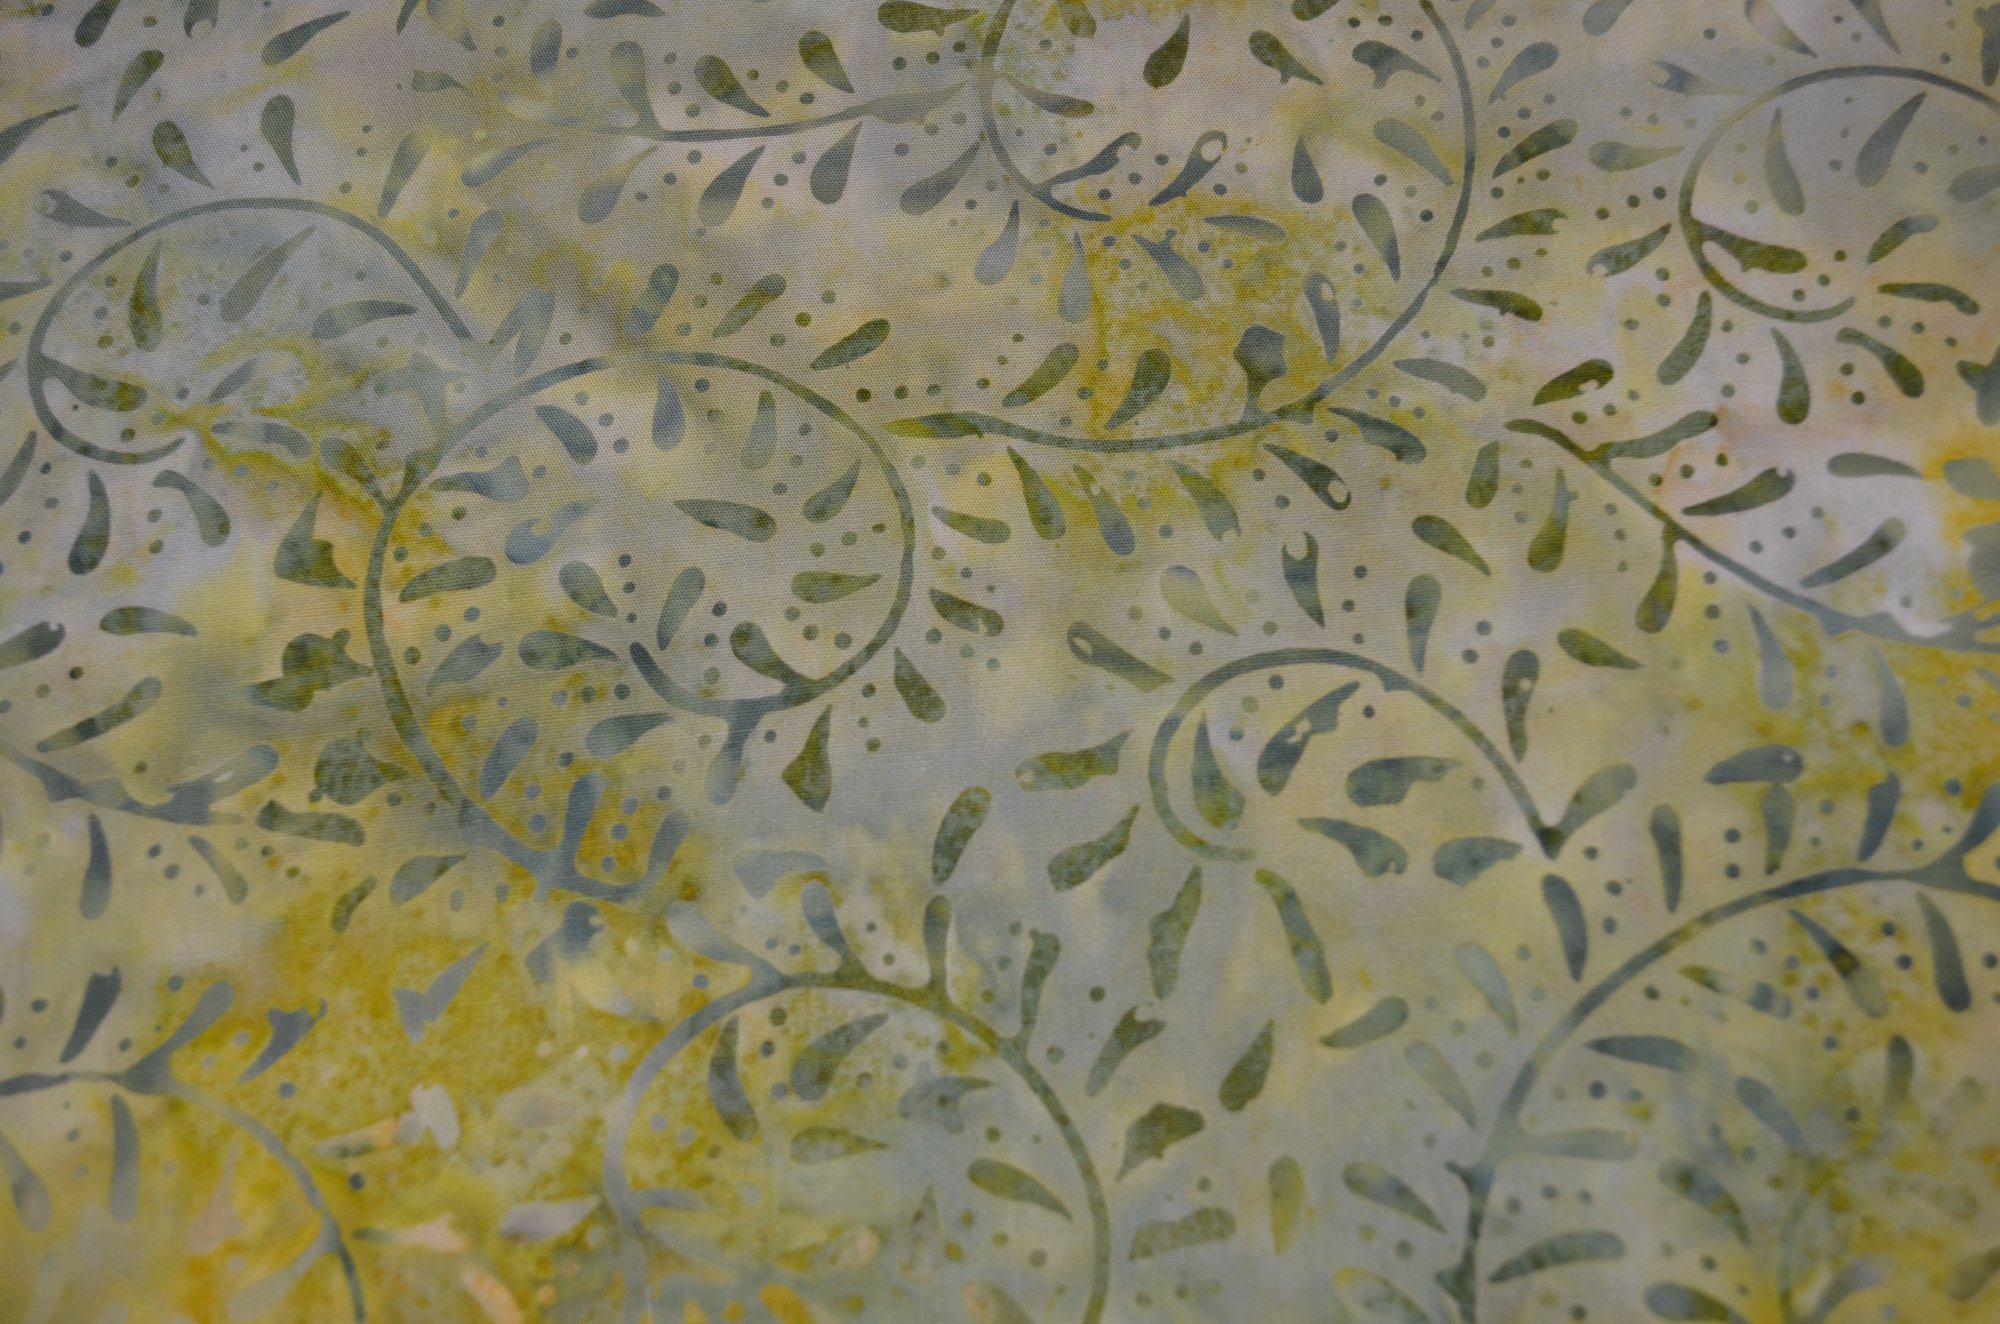 Batavian Batiks Green/Gold Curling Leaves